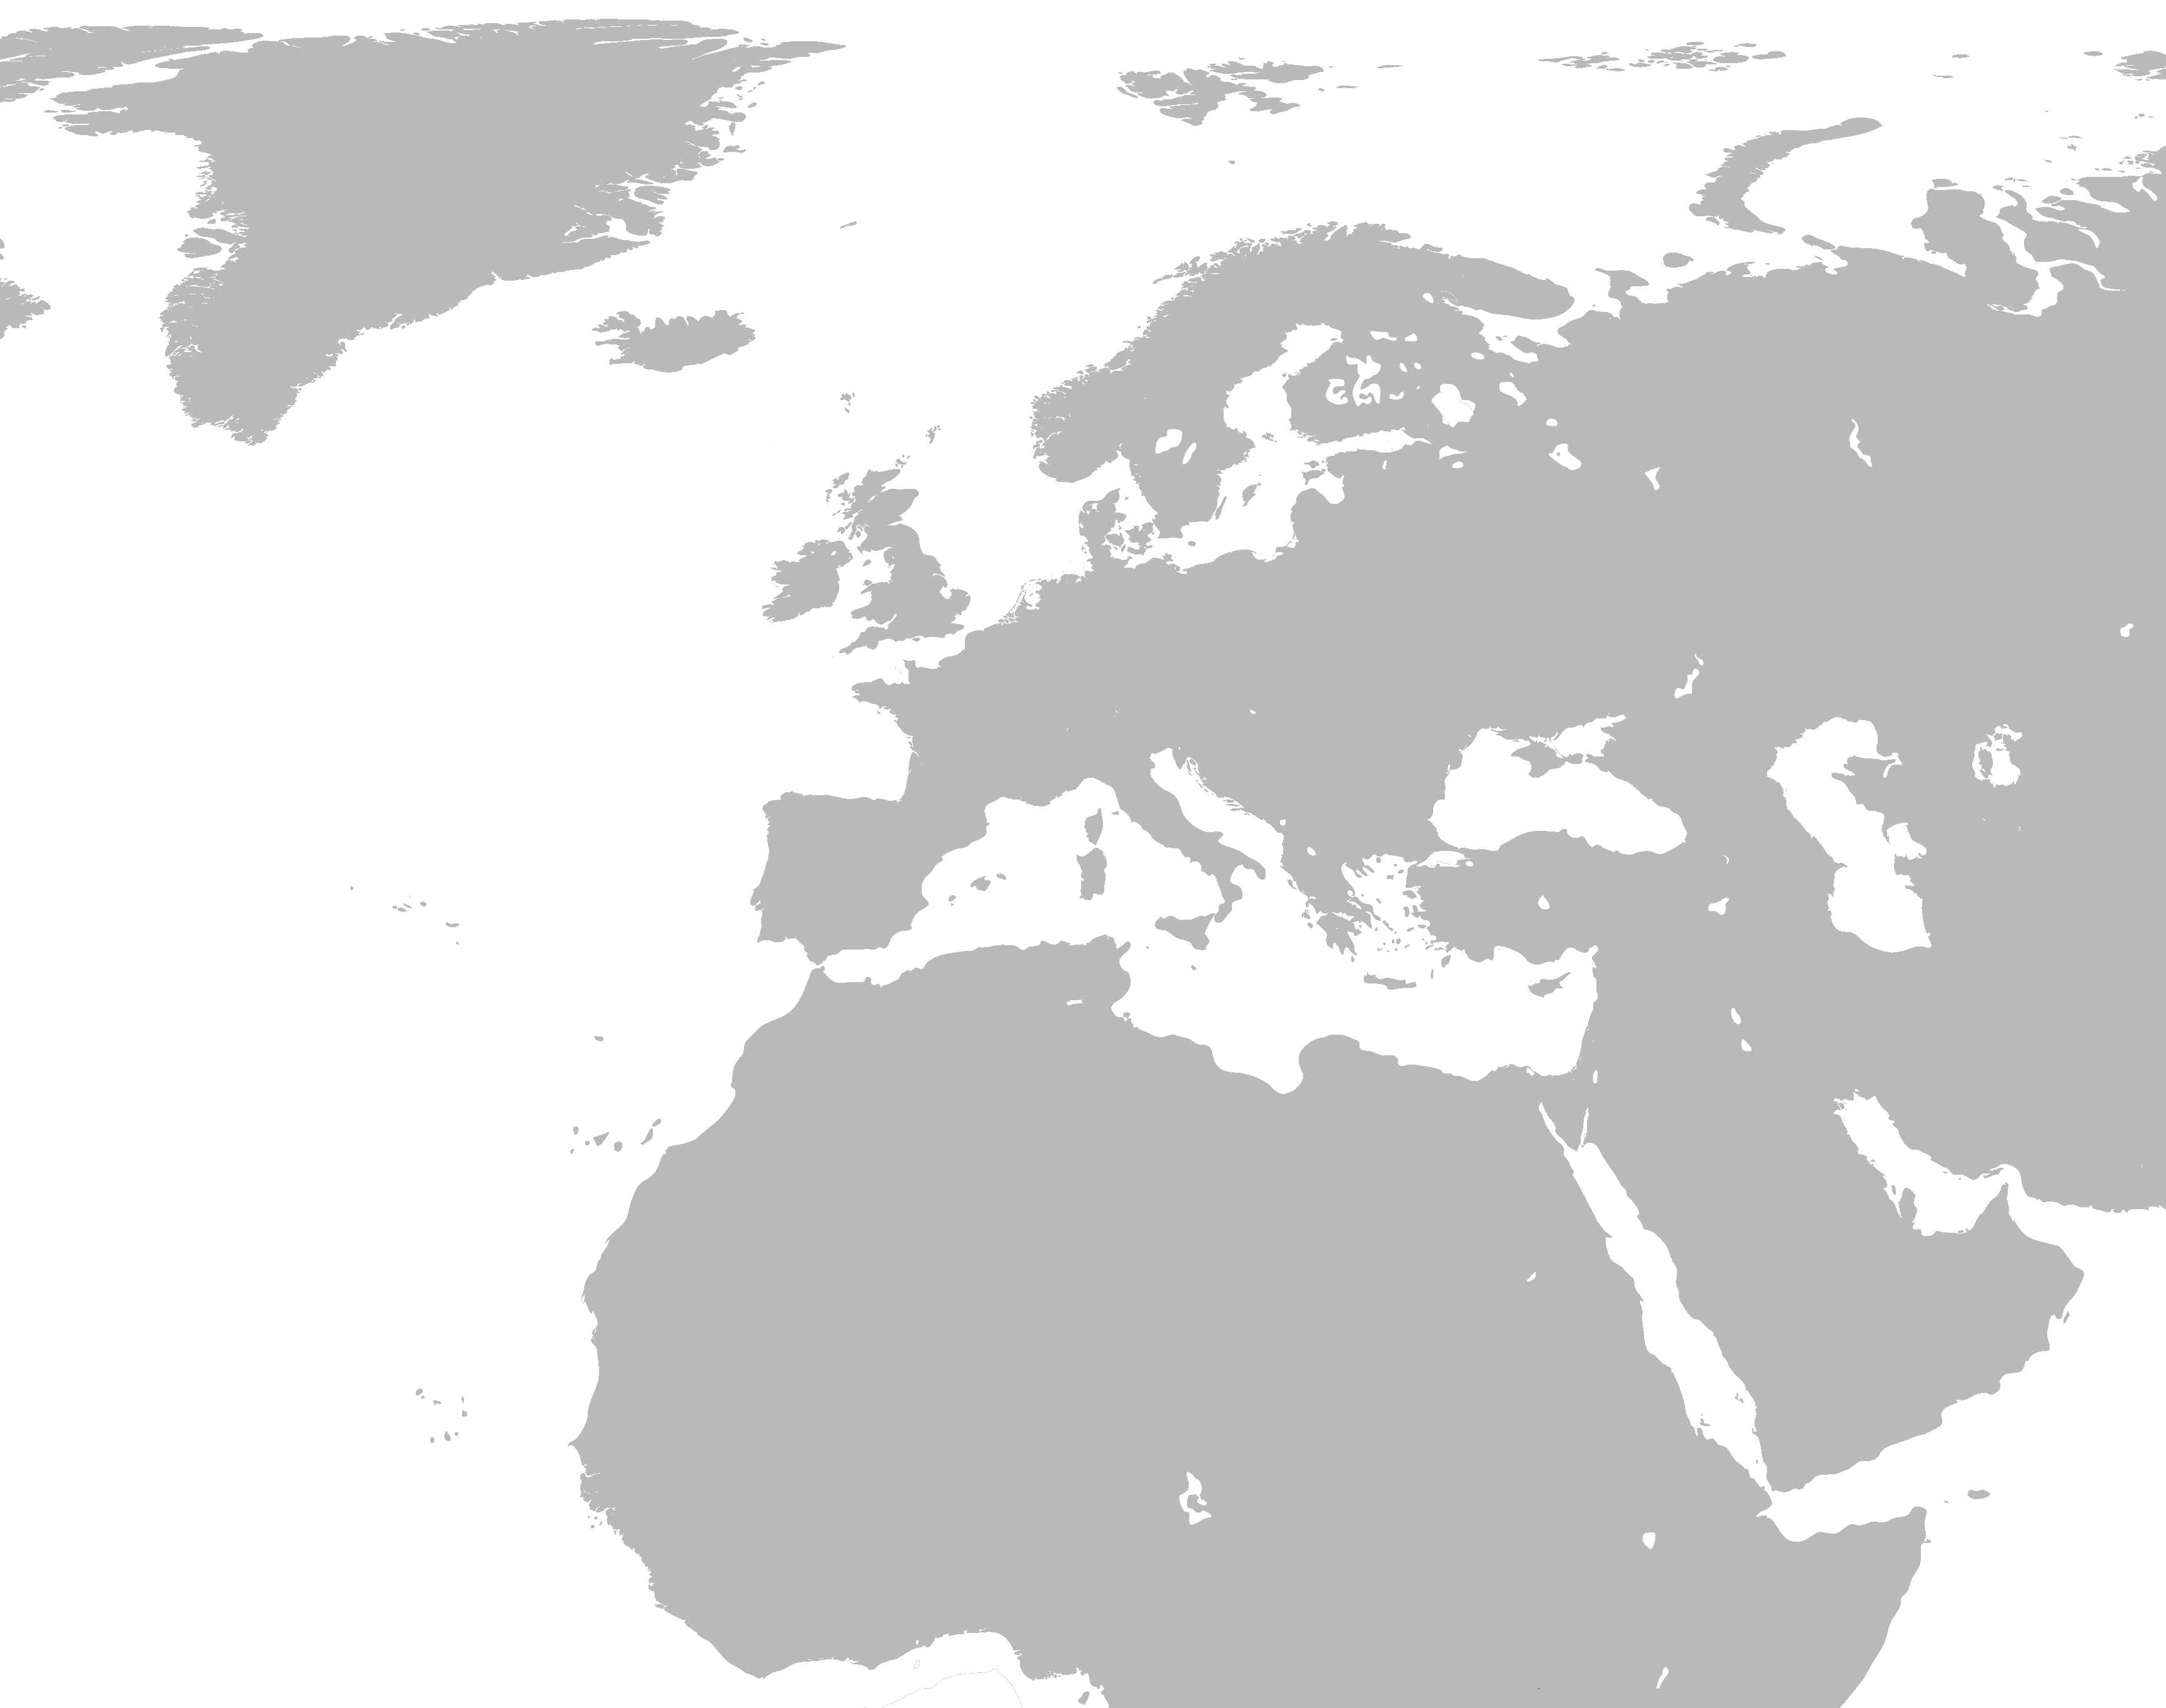 World Map Blank Without Borders. Blank map of Europe png Image  Map Game Wiki FANDOM powered